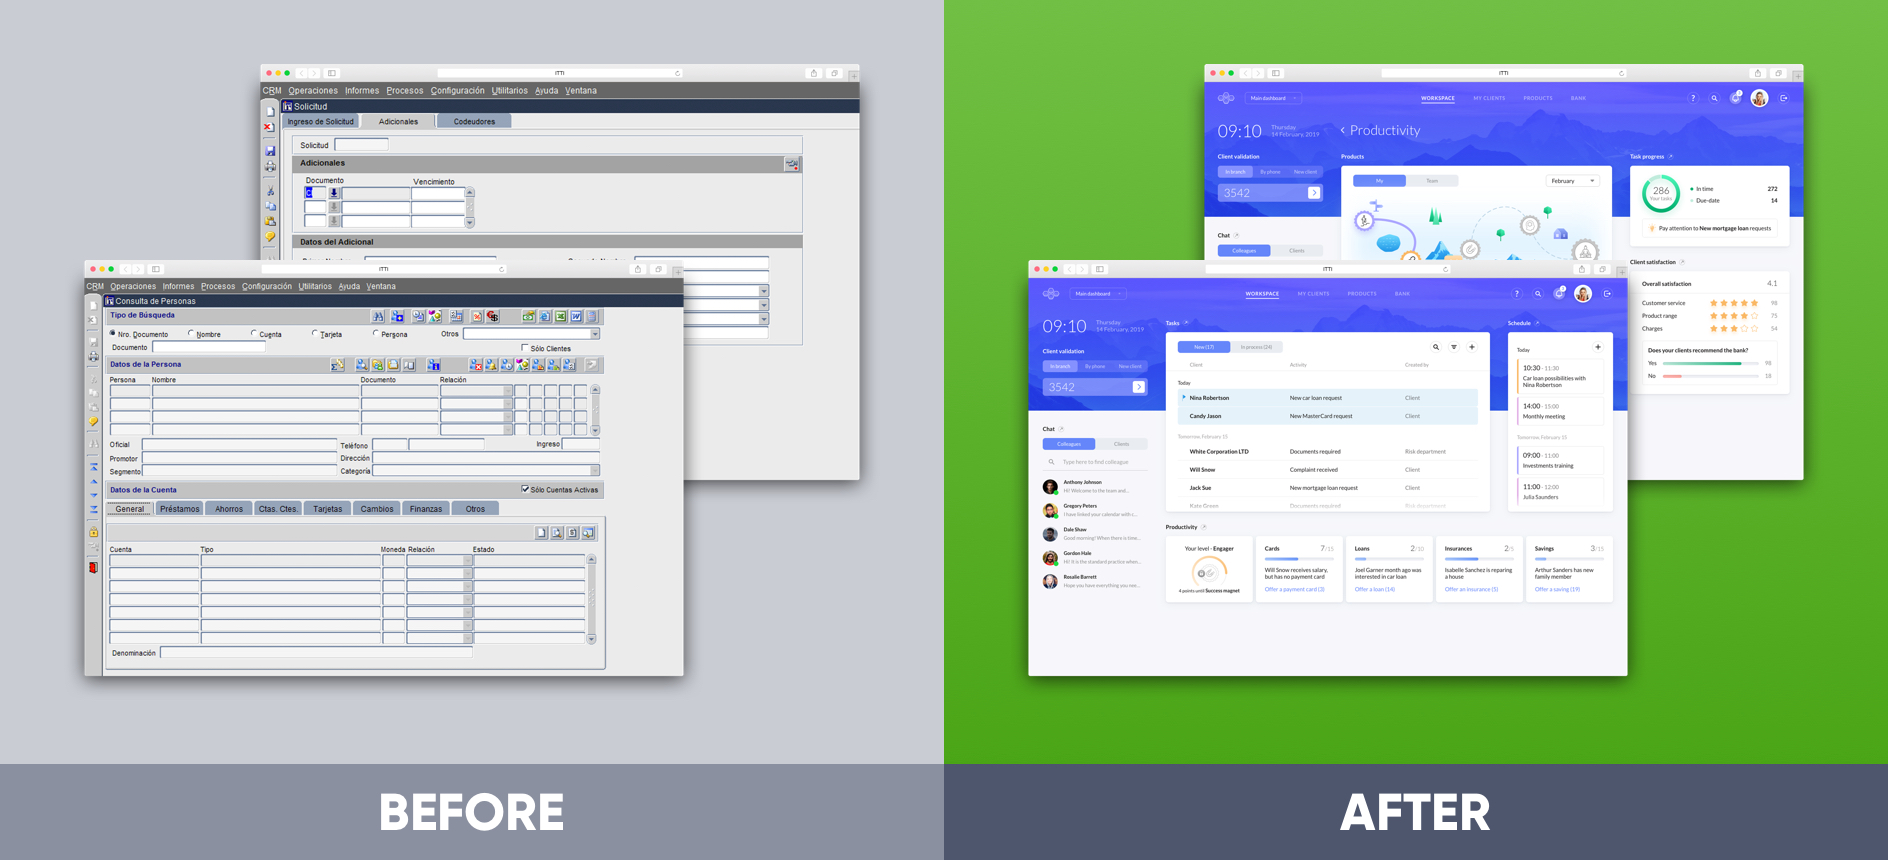 core-banking-ux-transformation-before-after-M-1.jpg